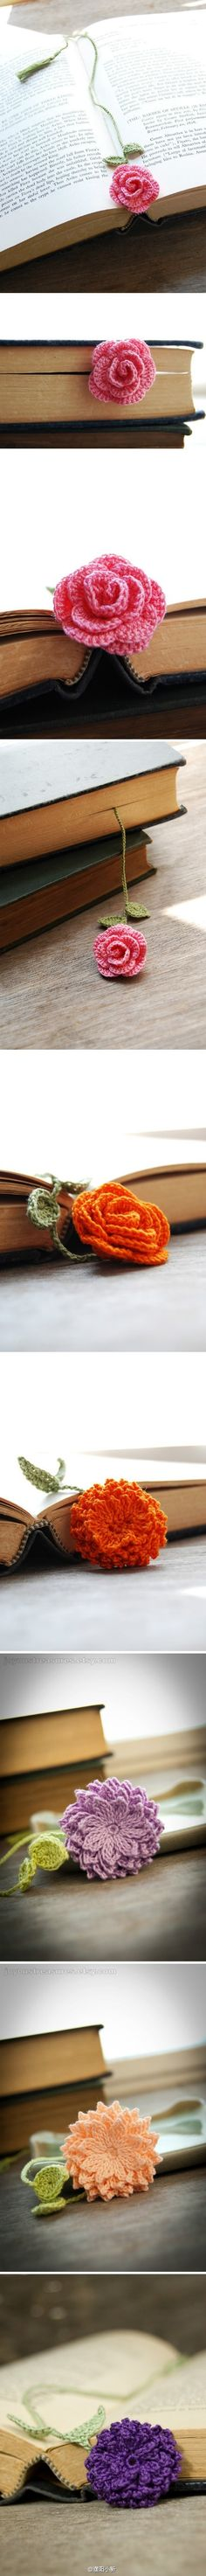 Book Mark. Pinning this for how to make the flowers for hats, etc.